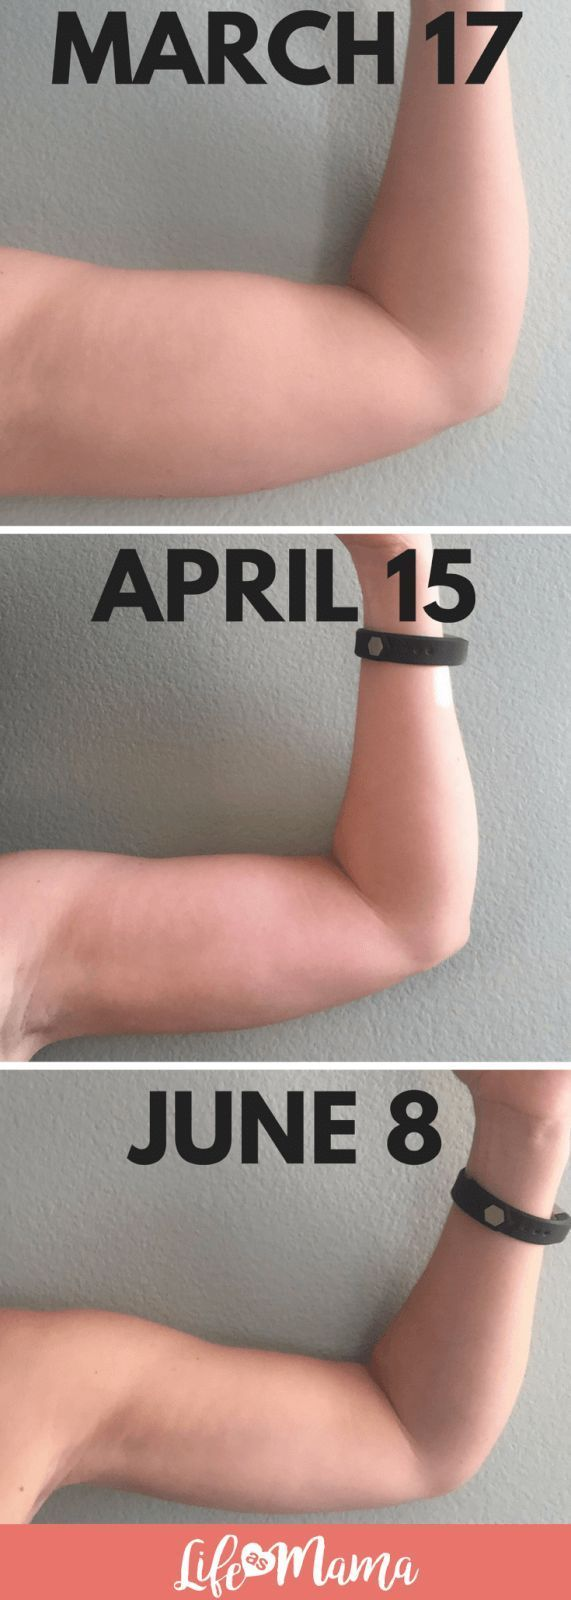 How I Toned My Arms In Less Than 3 Months using only 5 pound weights 4x a week! #tonedarms #fitness...